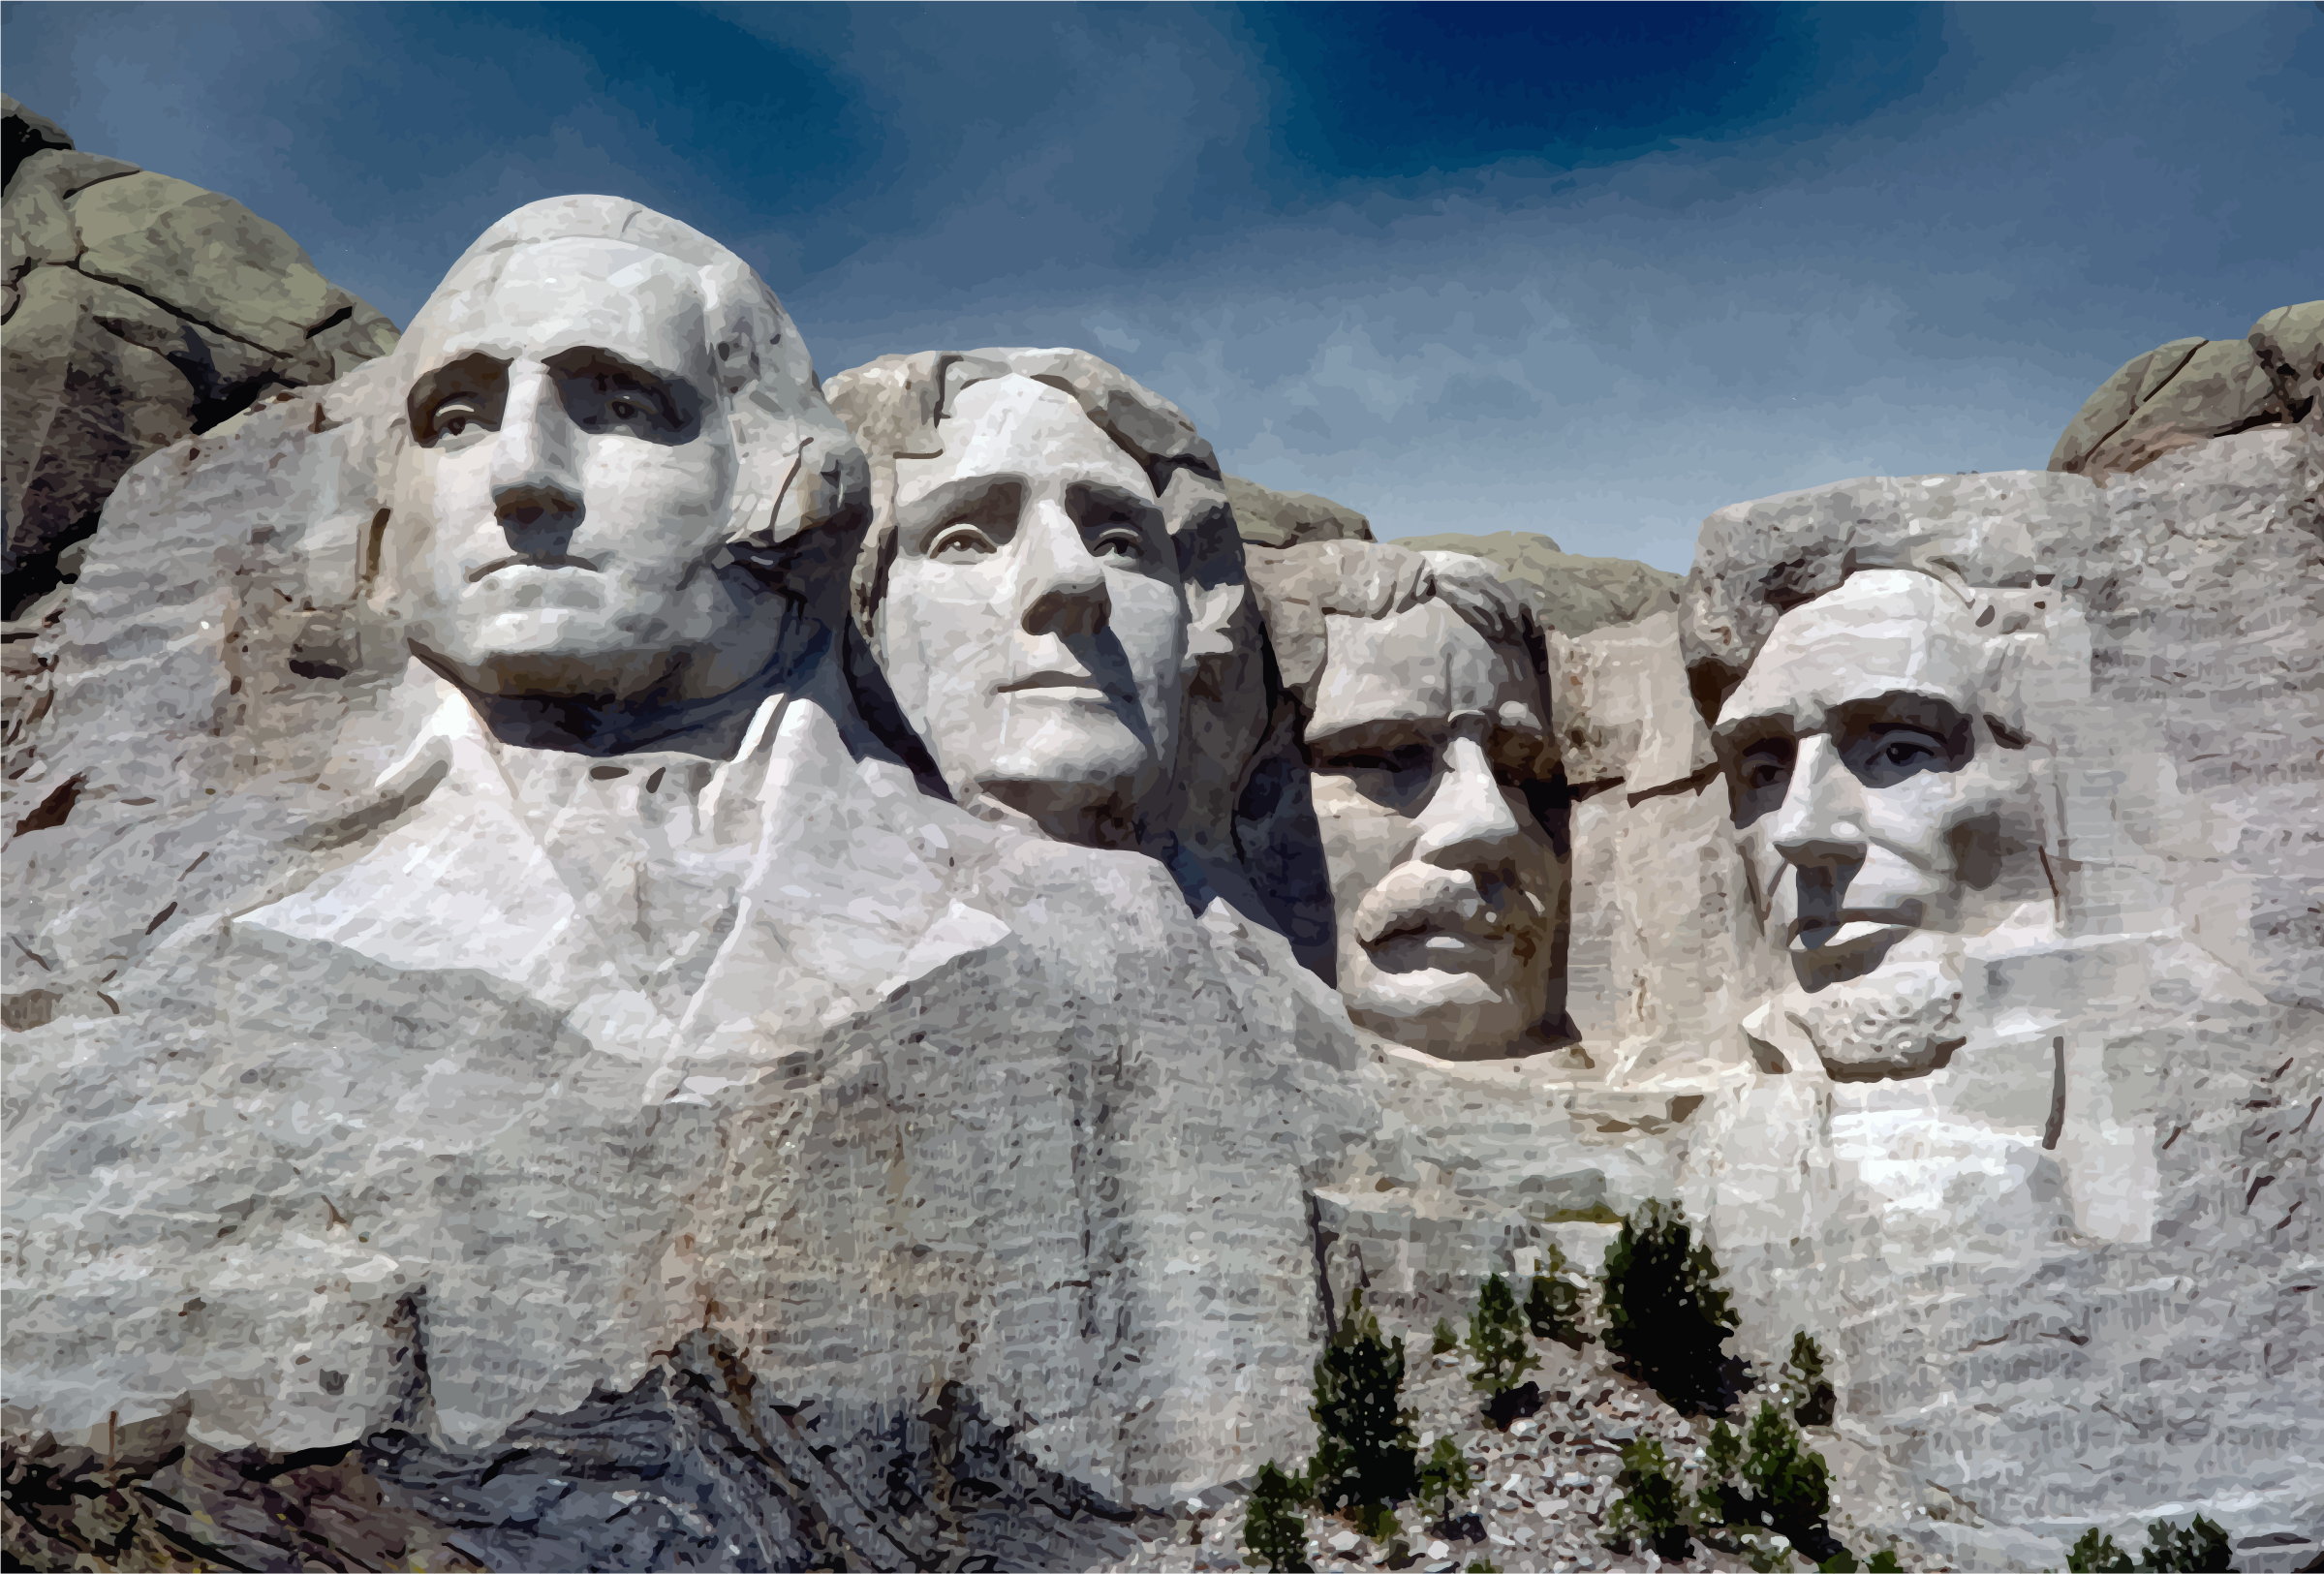 Exploring America's Great Parks | Mount Rushmore National Memorial, South Dakota, USA